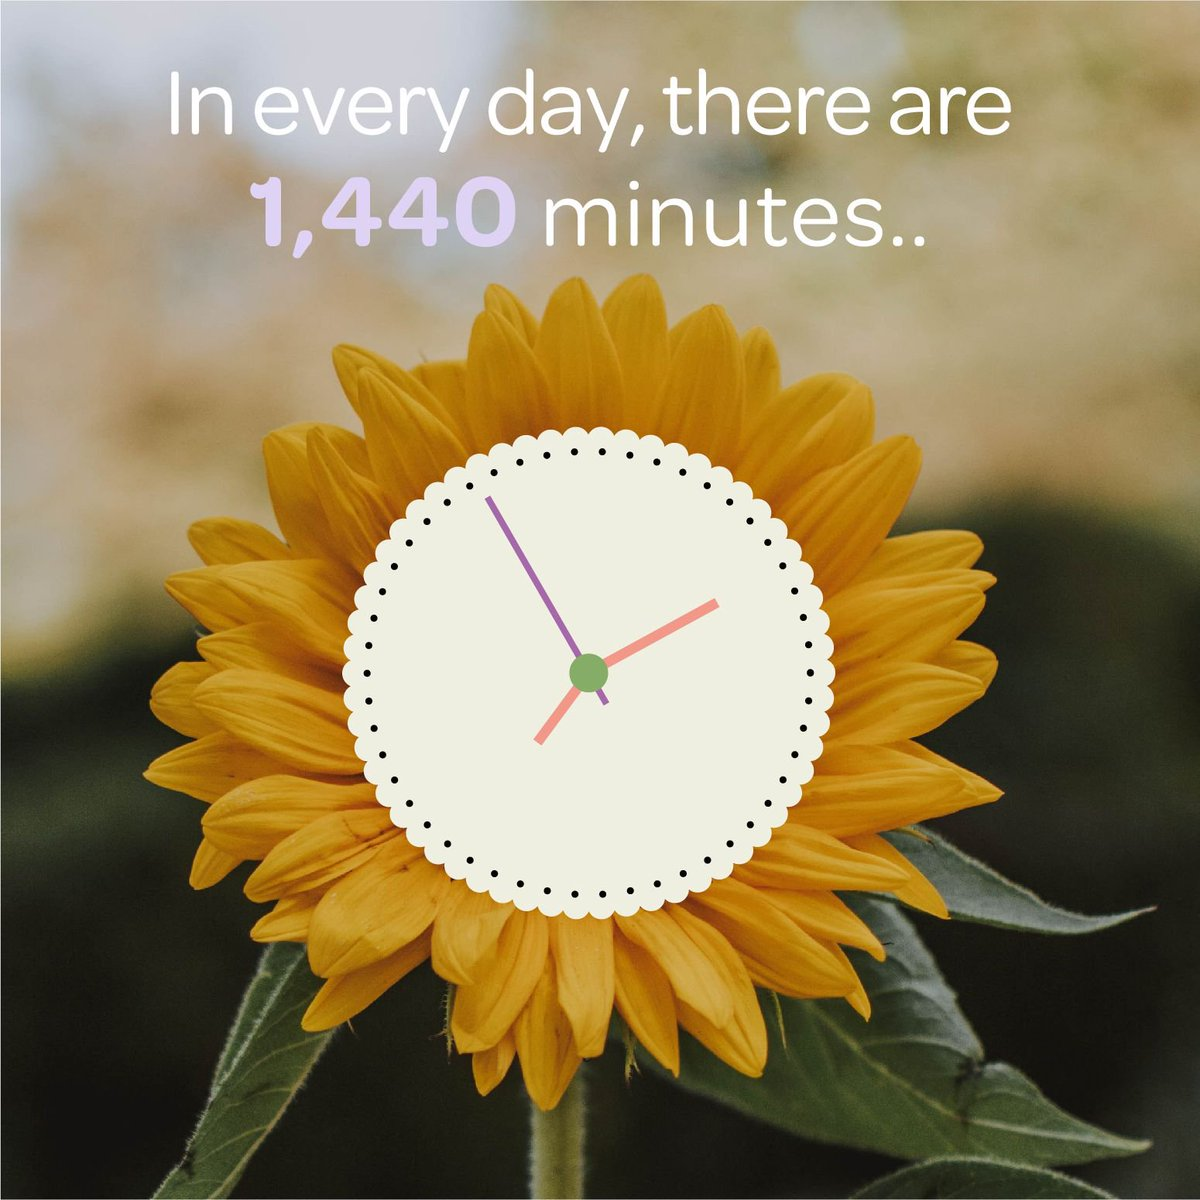 """""""In every day, there are 1,440 minutes, that means we have 1,440 daily opportunities to make a positive impact."""" - Les Brown #shinethroughtherain #shine #foundation #newmarket #canada #north #charity #nonprofit #illness #funding #donations #help #patients #health #sickness"""